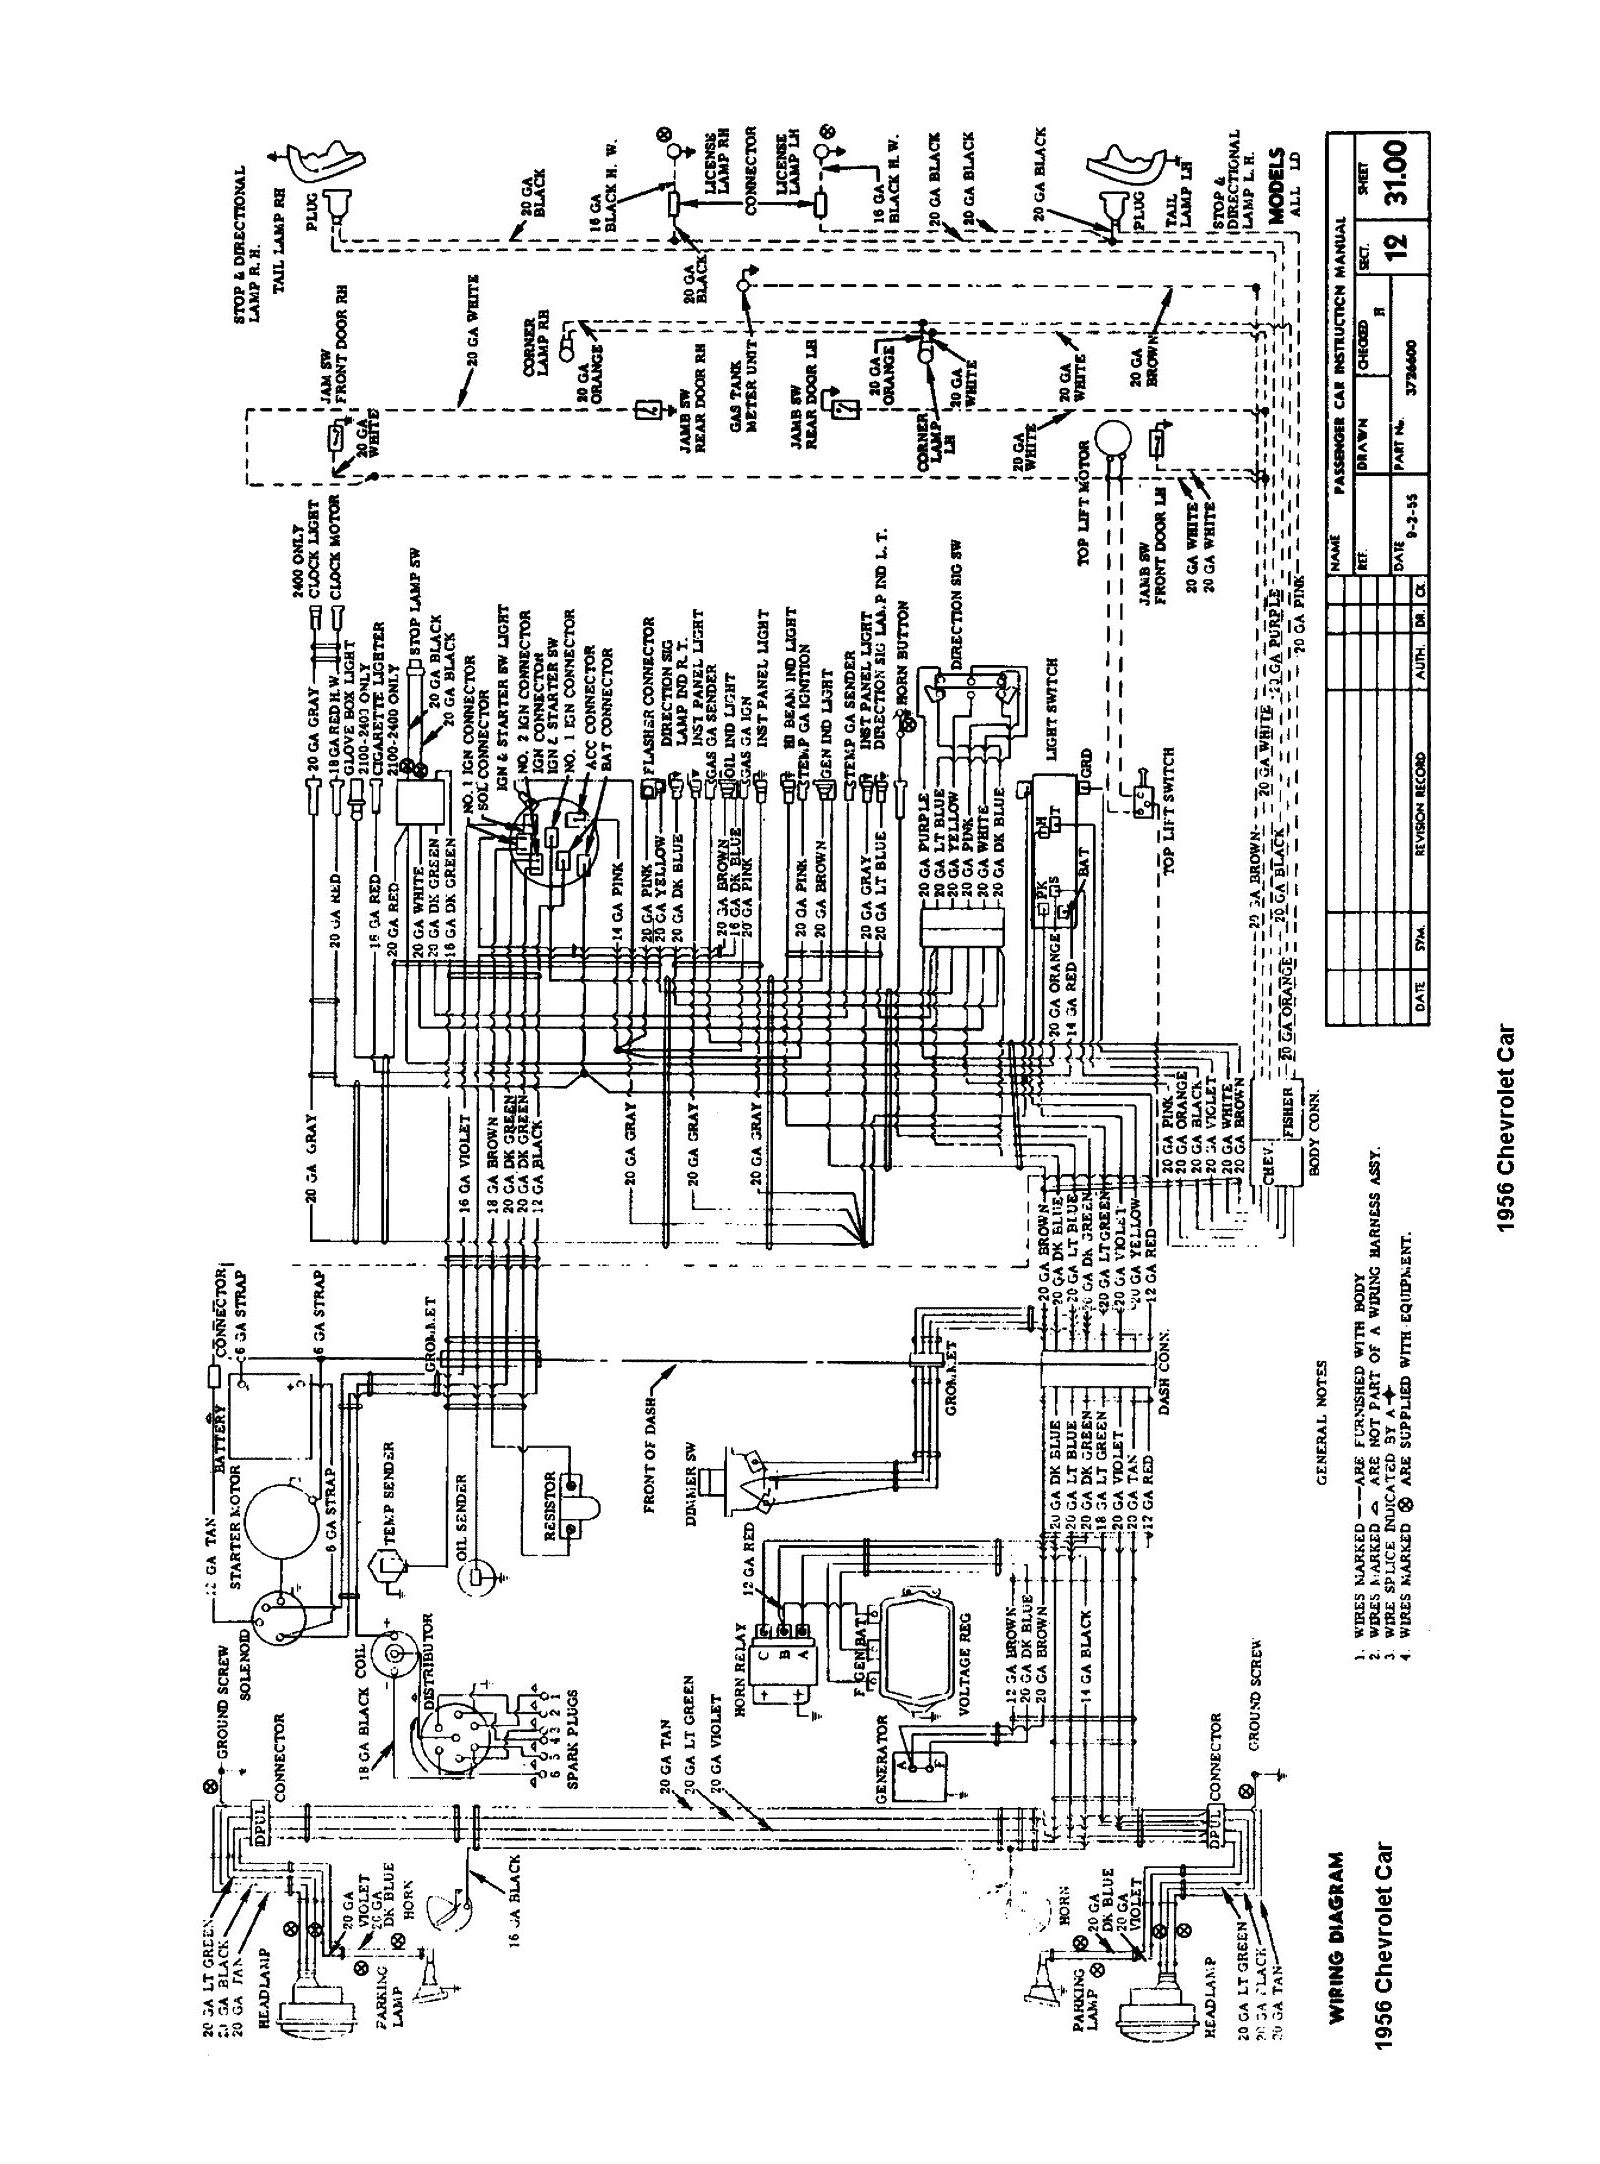 55 chev wiring diagram list of wiring diagrams 57 chevy wiring diagram wiring diagram